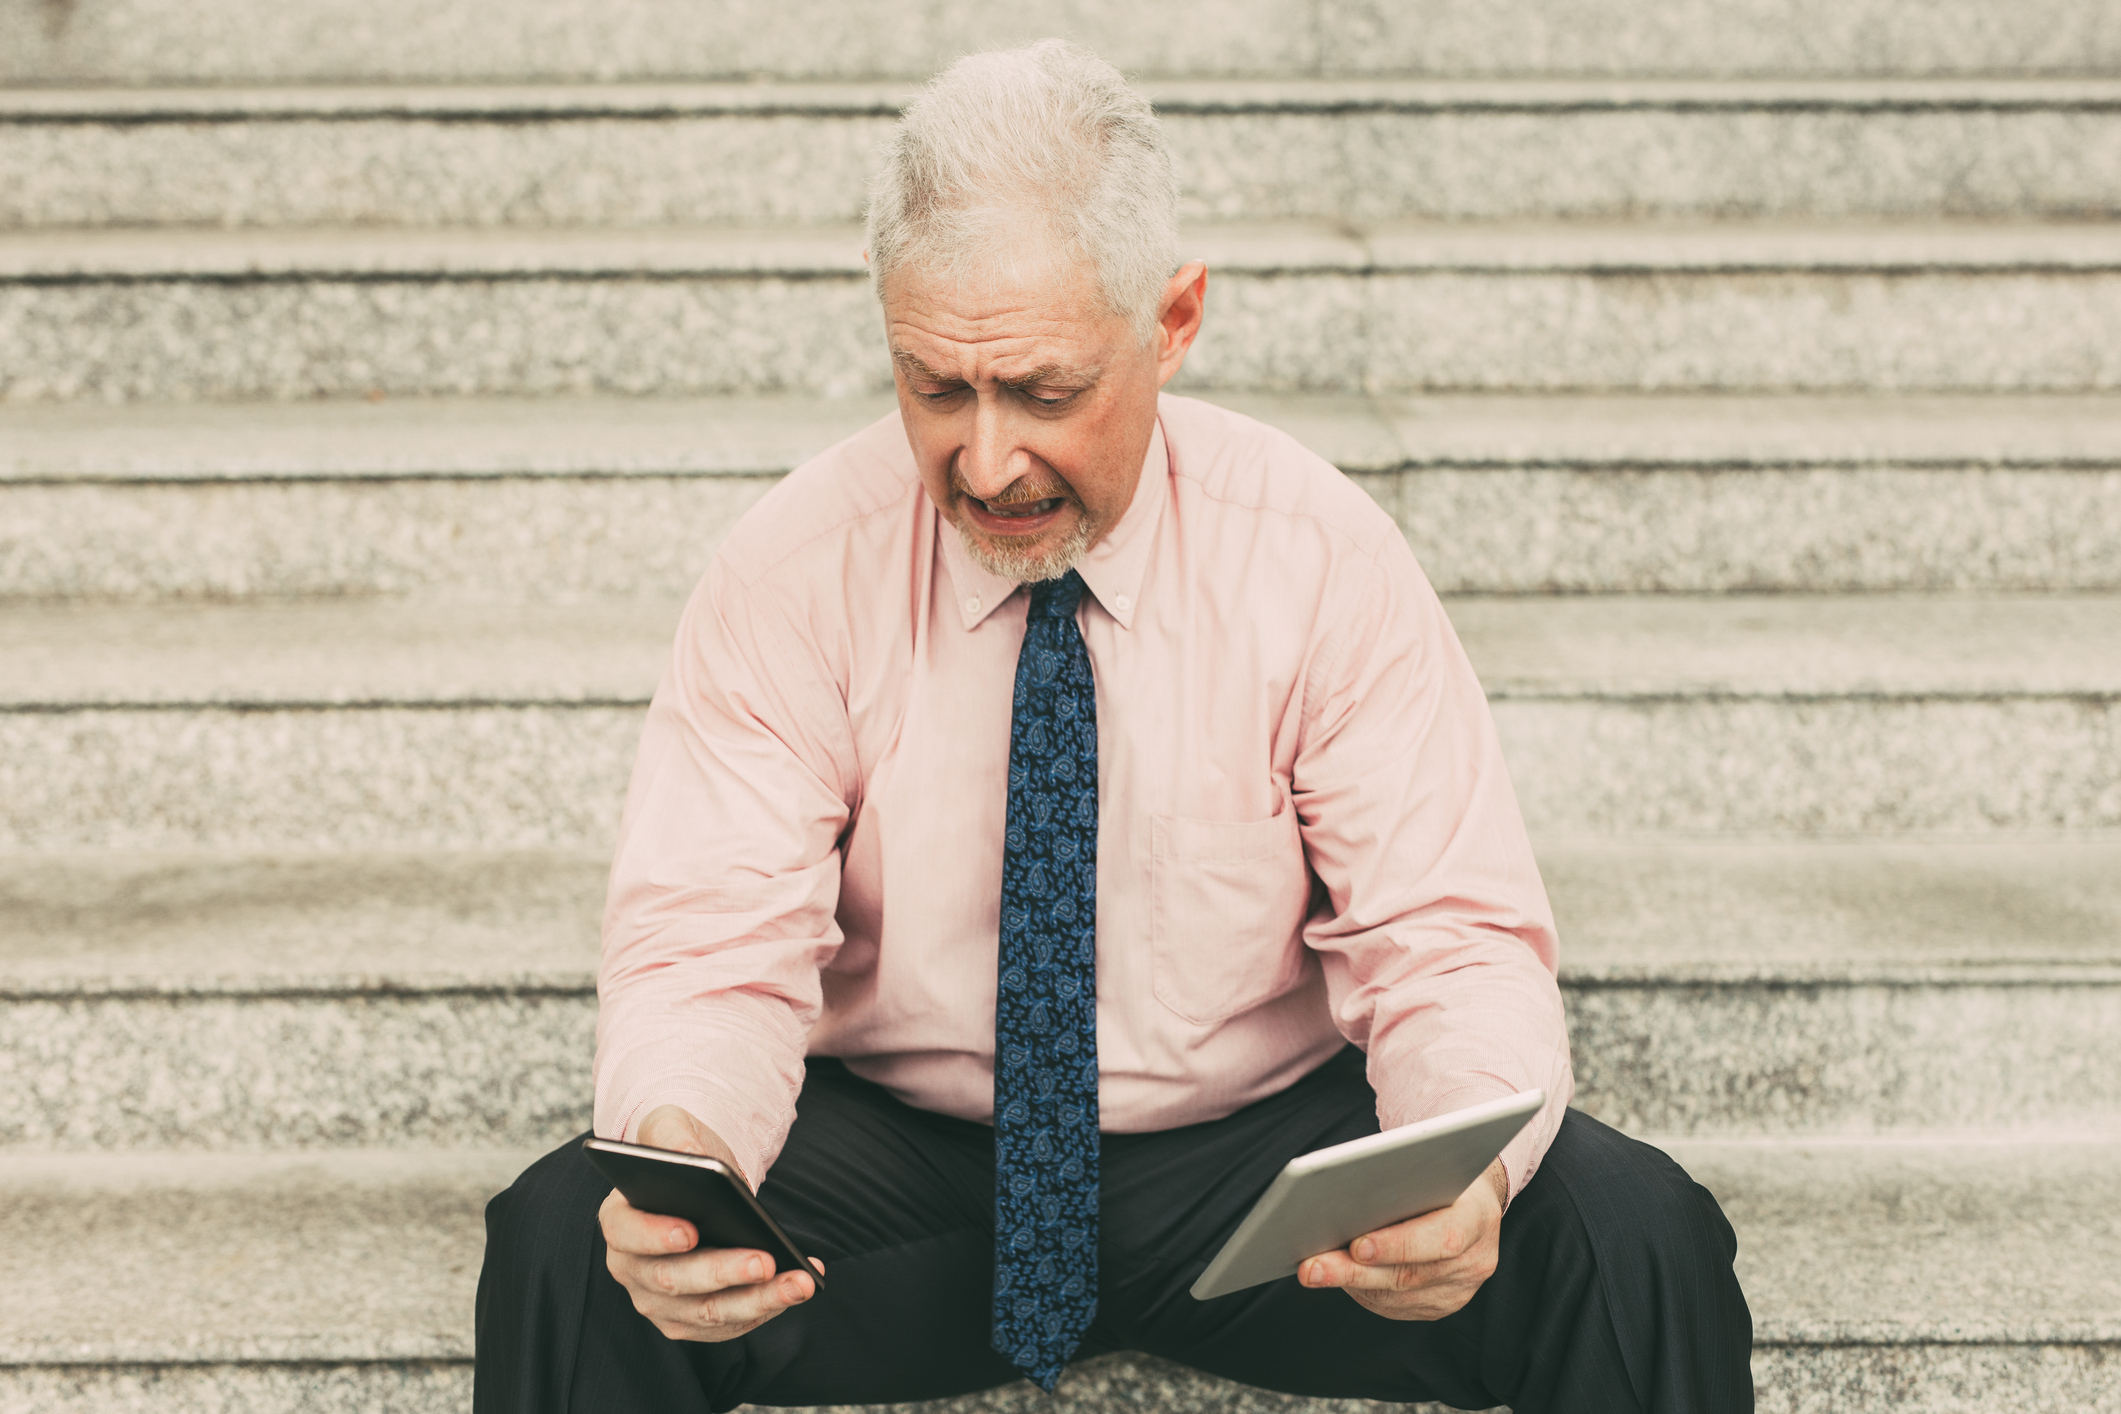 Worried Business Man with Tablet and Smartphone